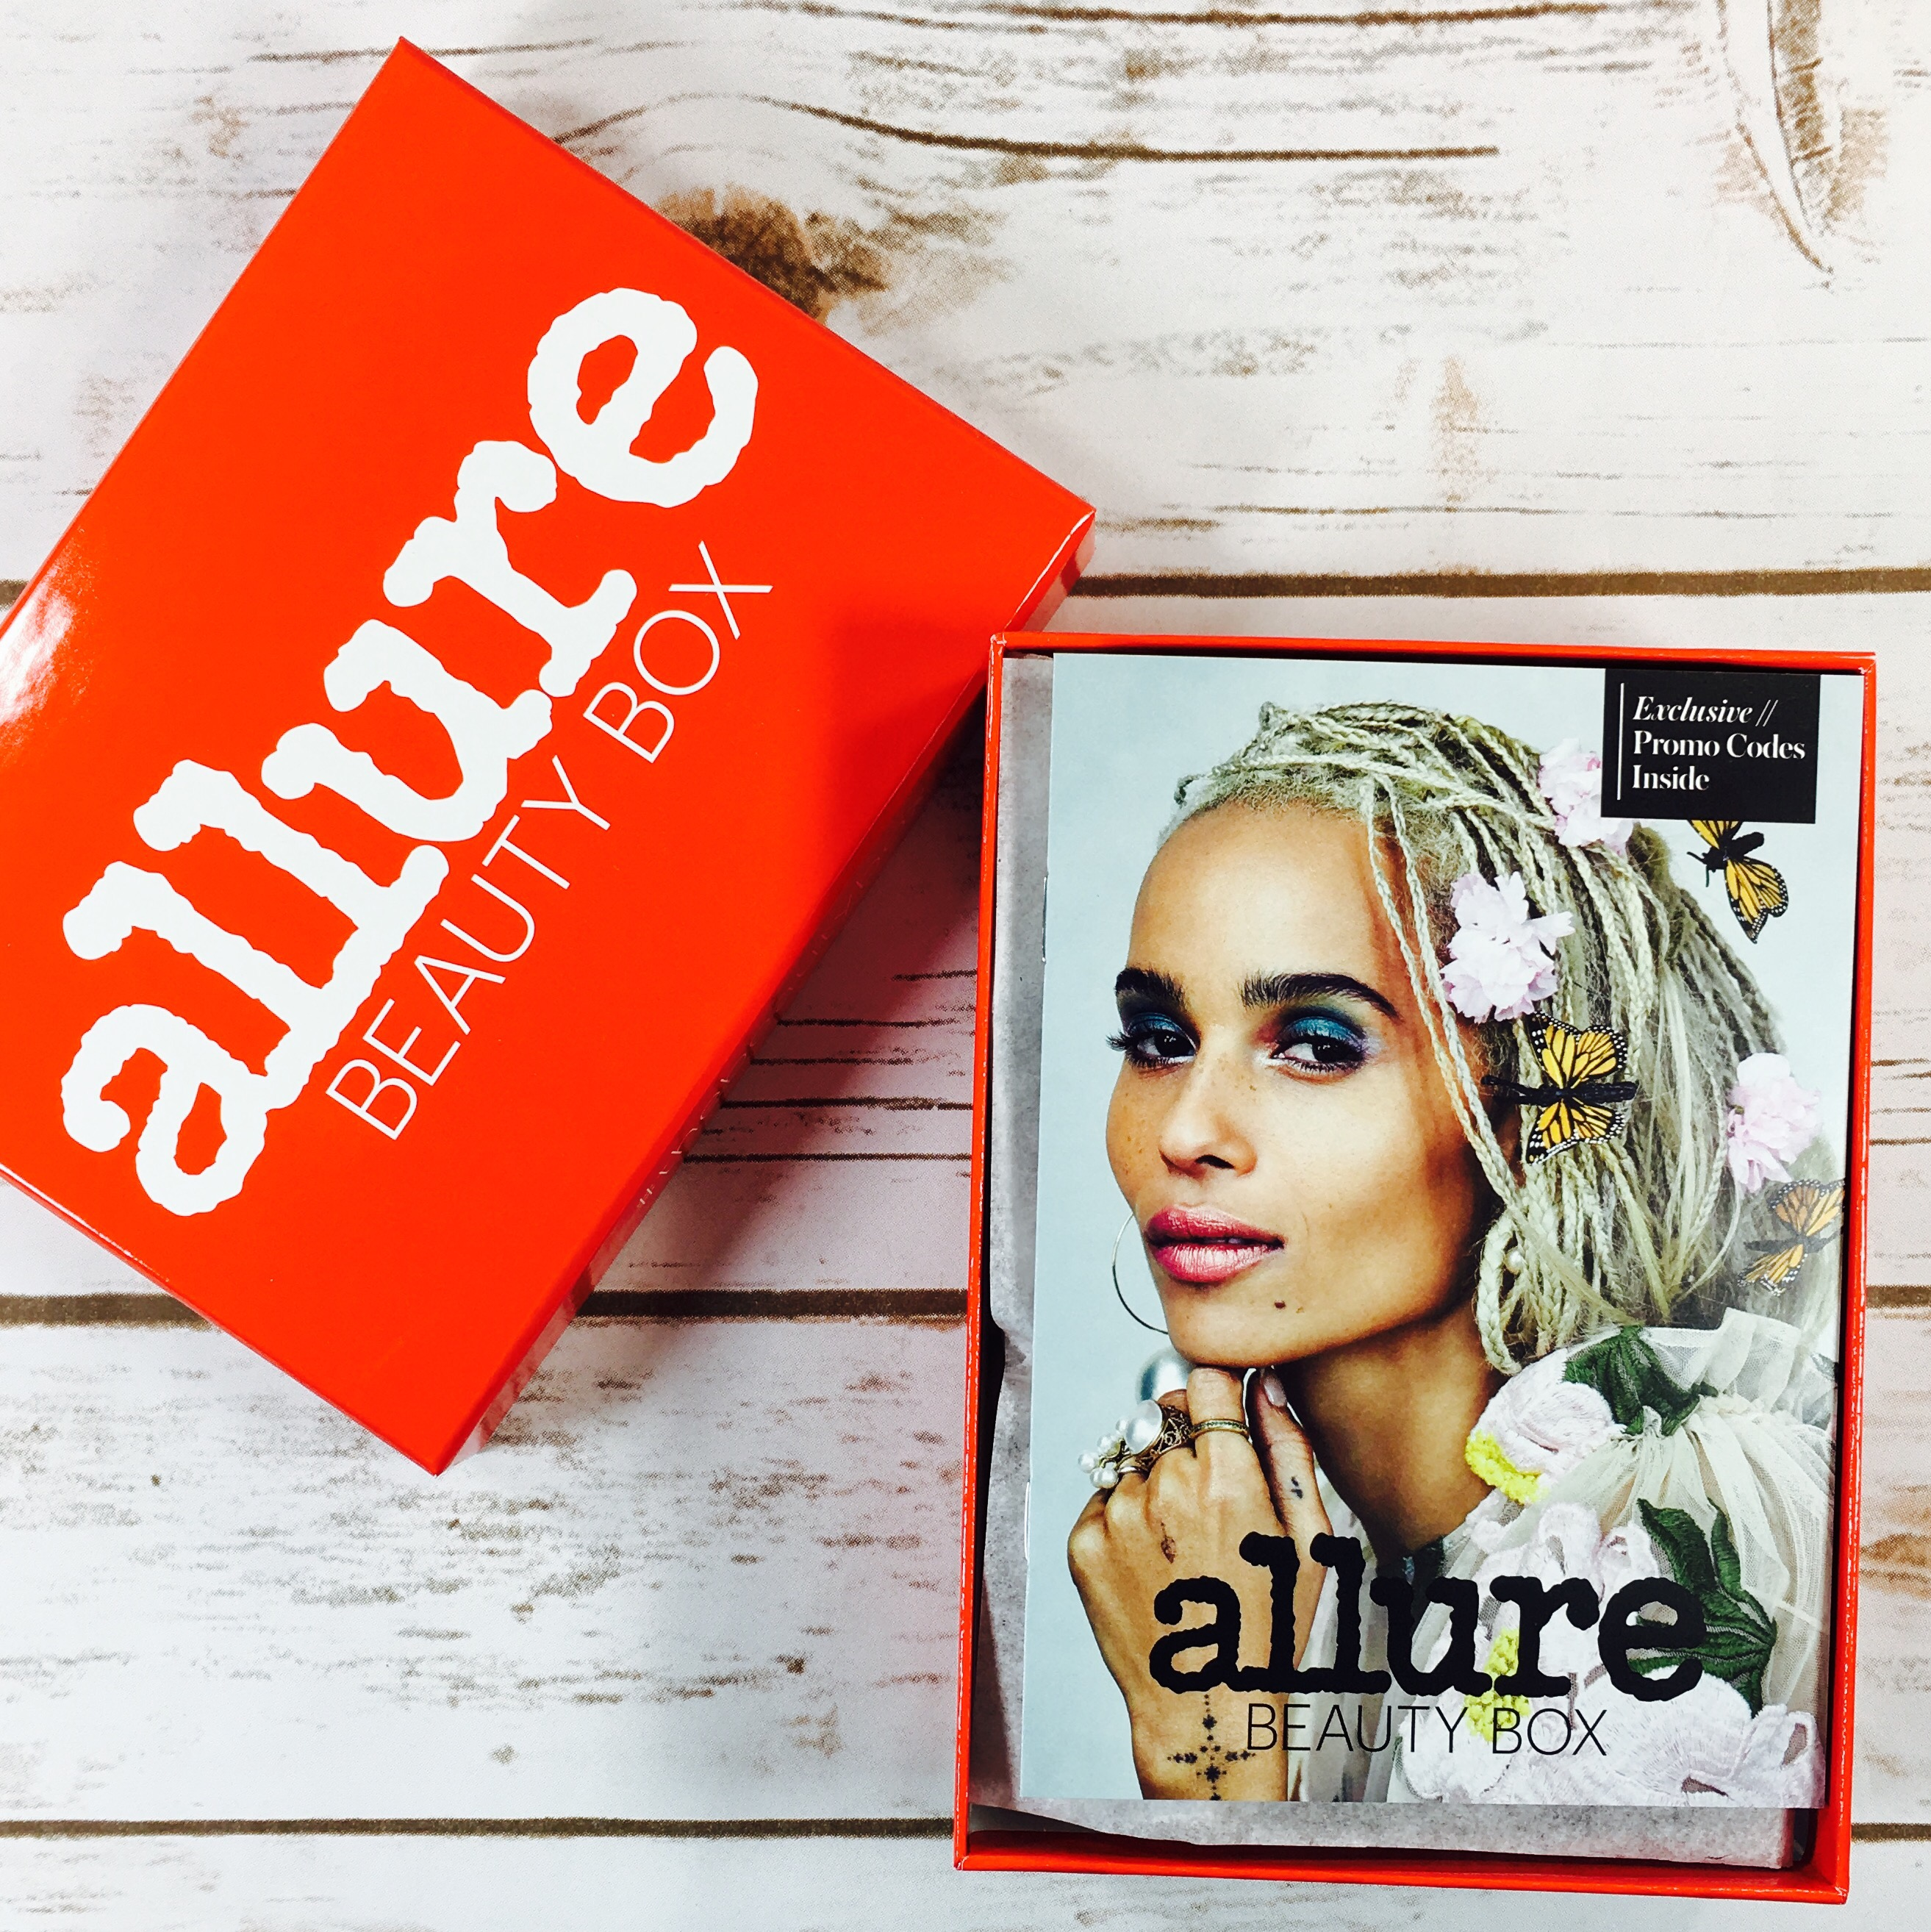 Allure Beauty Box June 2017 Subscription Box Review & Coupon